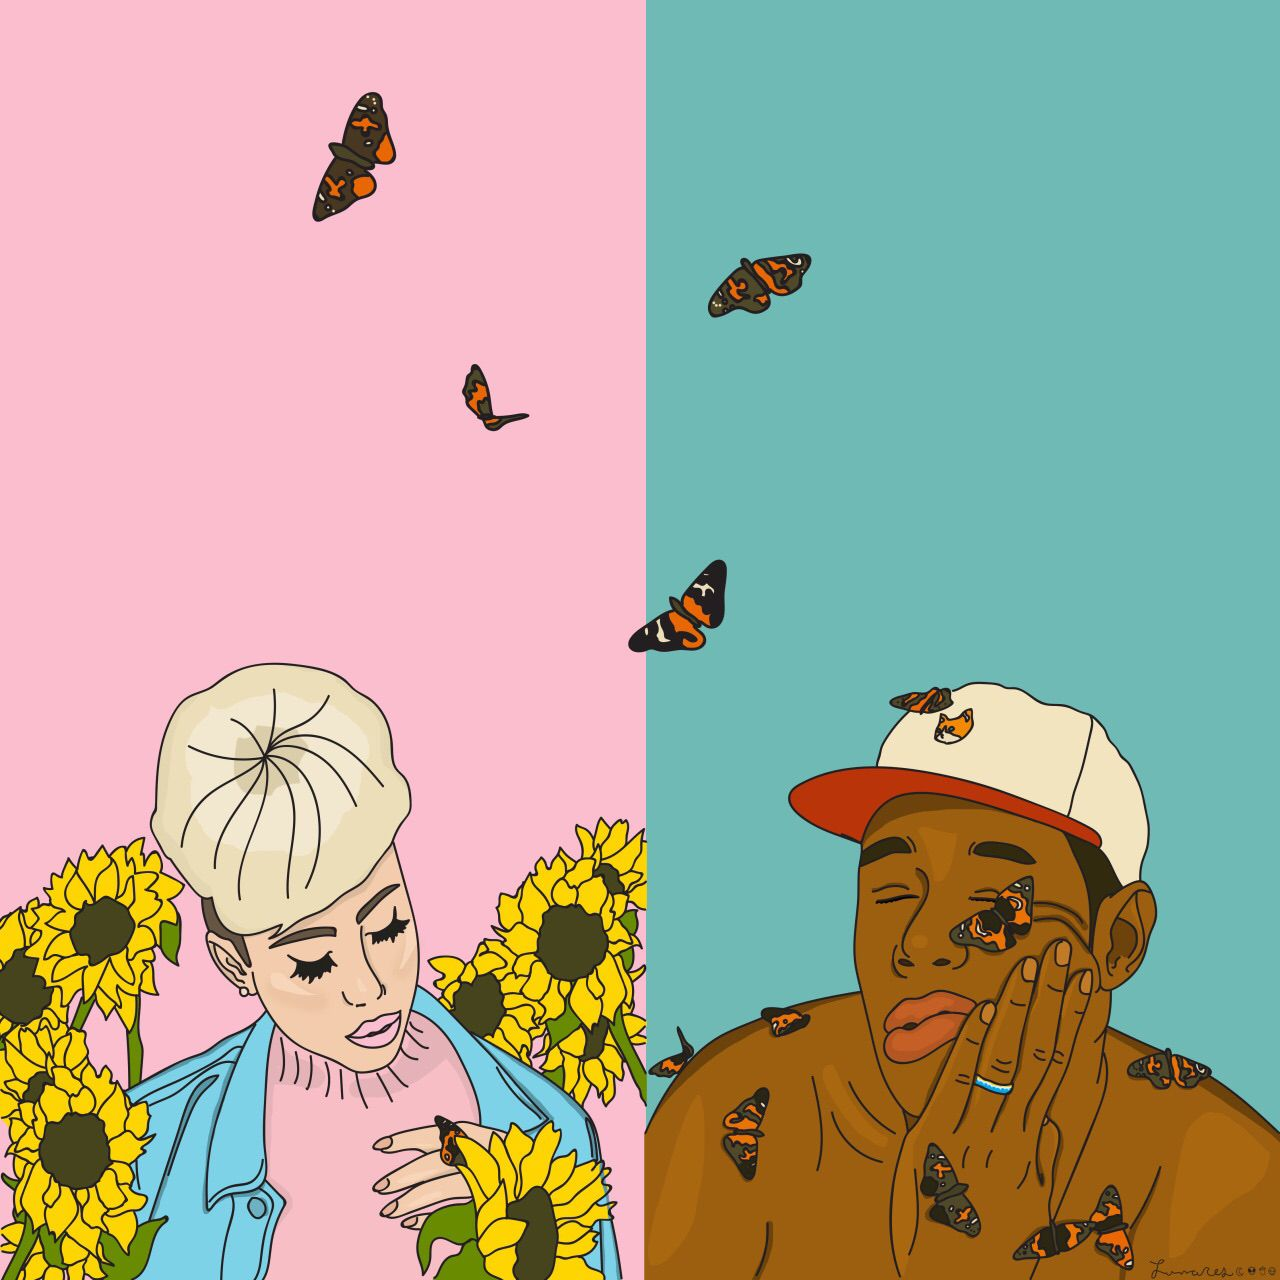 Pin by Emily Warmoth on m e d i a Tyler the creator